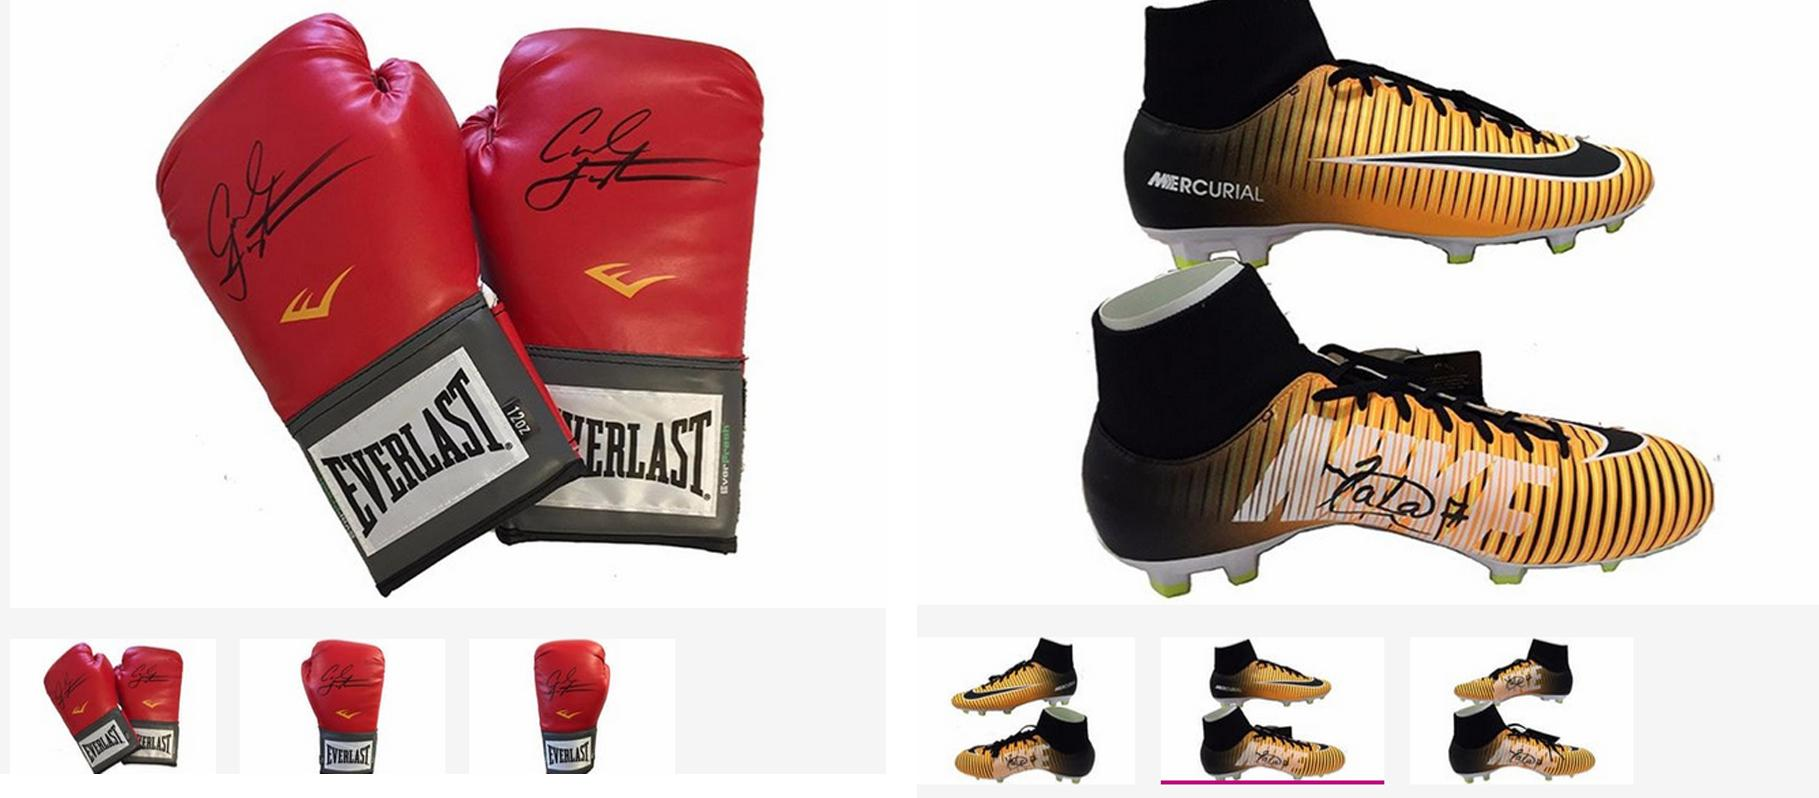 signed boxing gloves and football boots